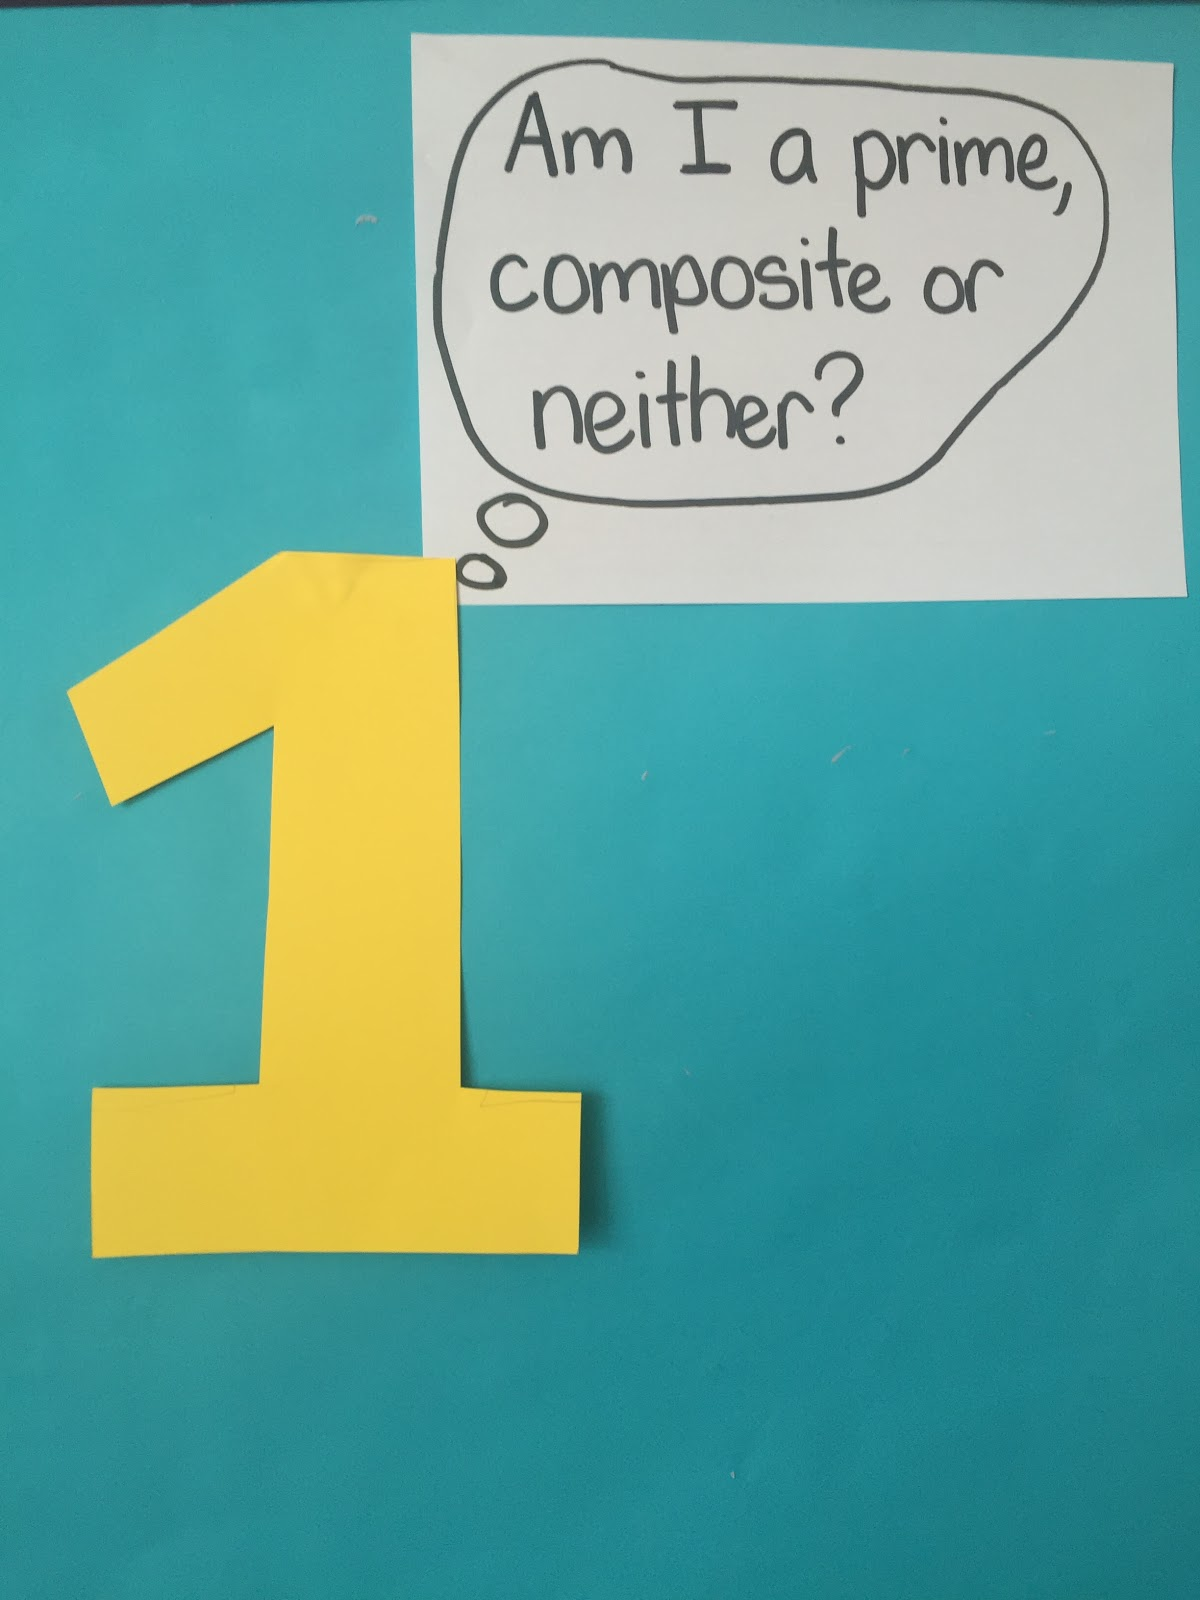 Enquiry-Based Maths: What are you 1? - Prime? Composite? Or ...